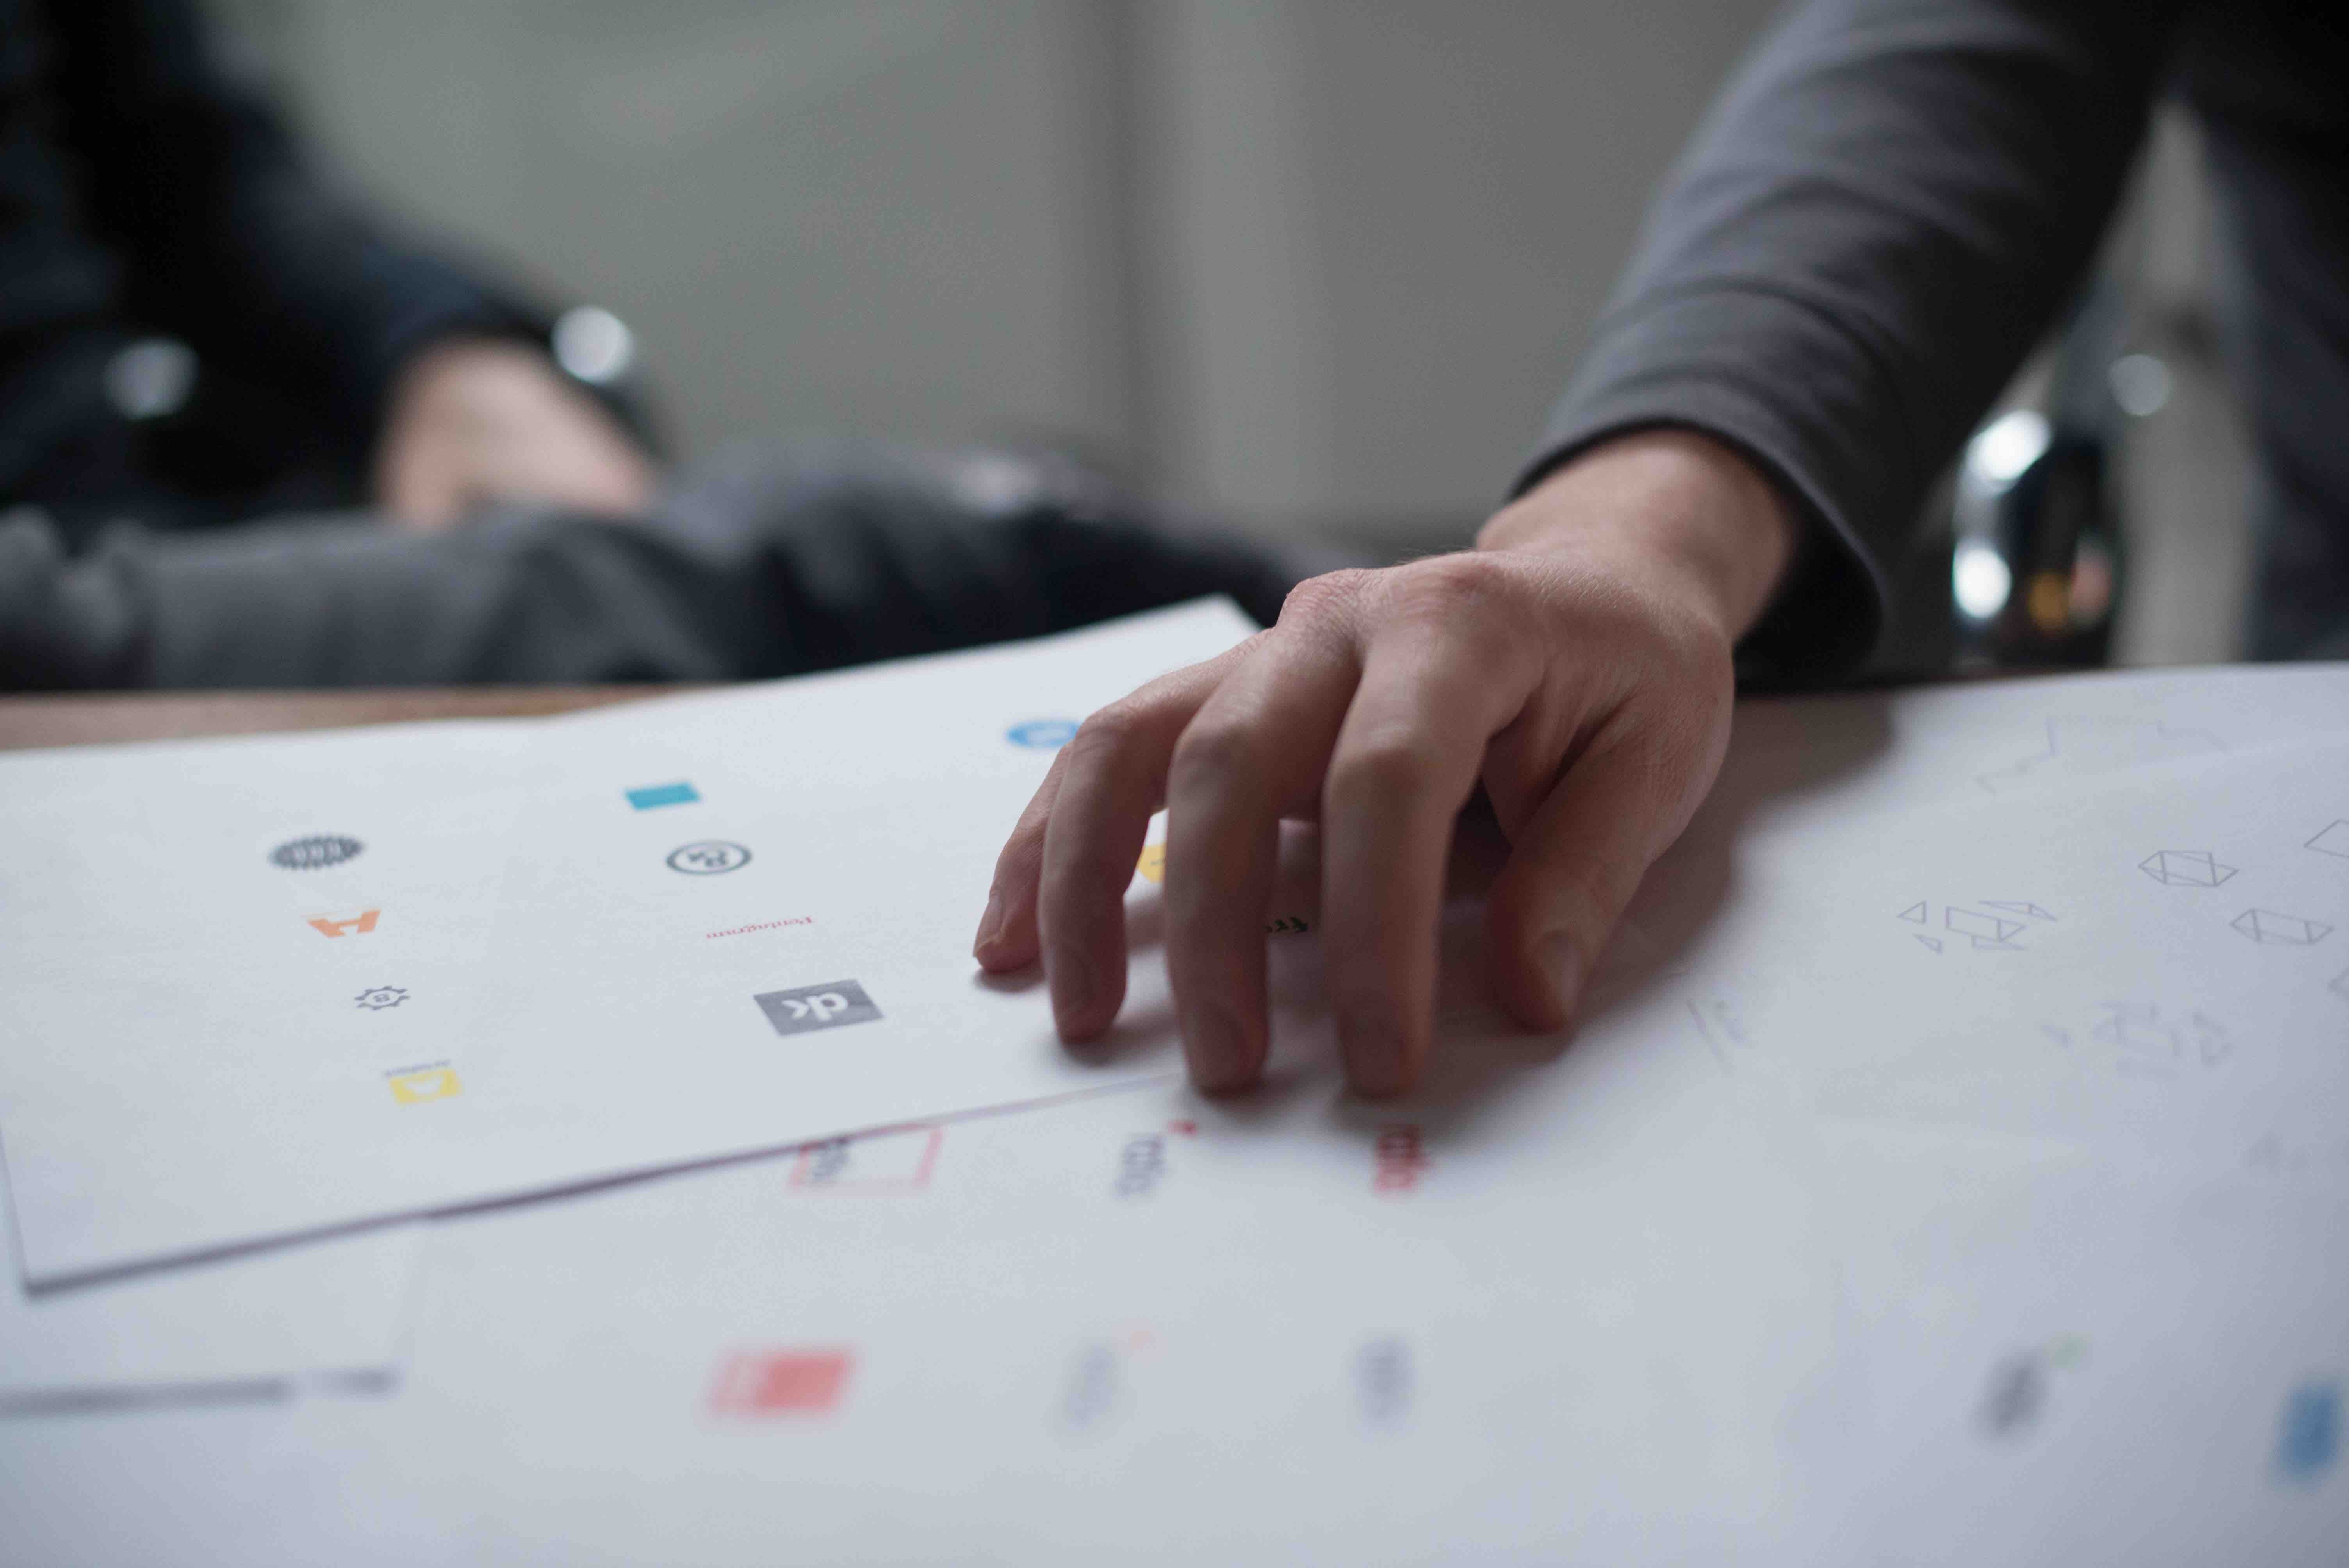 Presentation Design Tips For Busy Business Professionals | Ethos3 ...